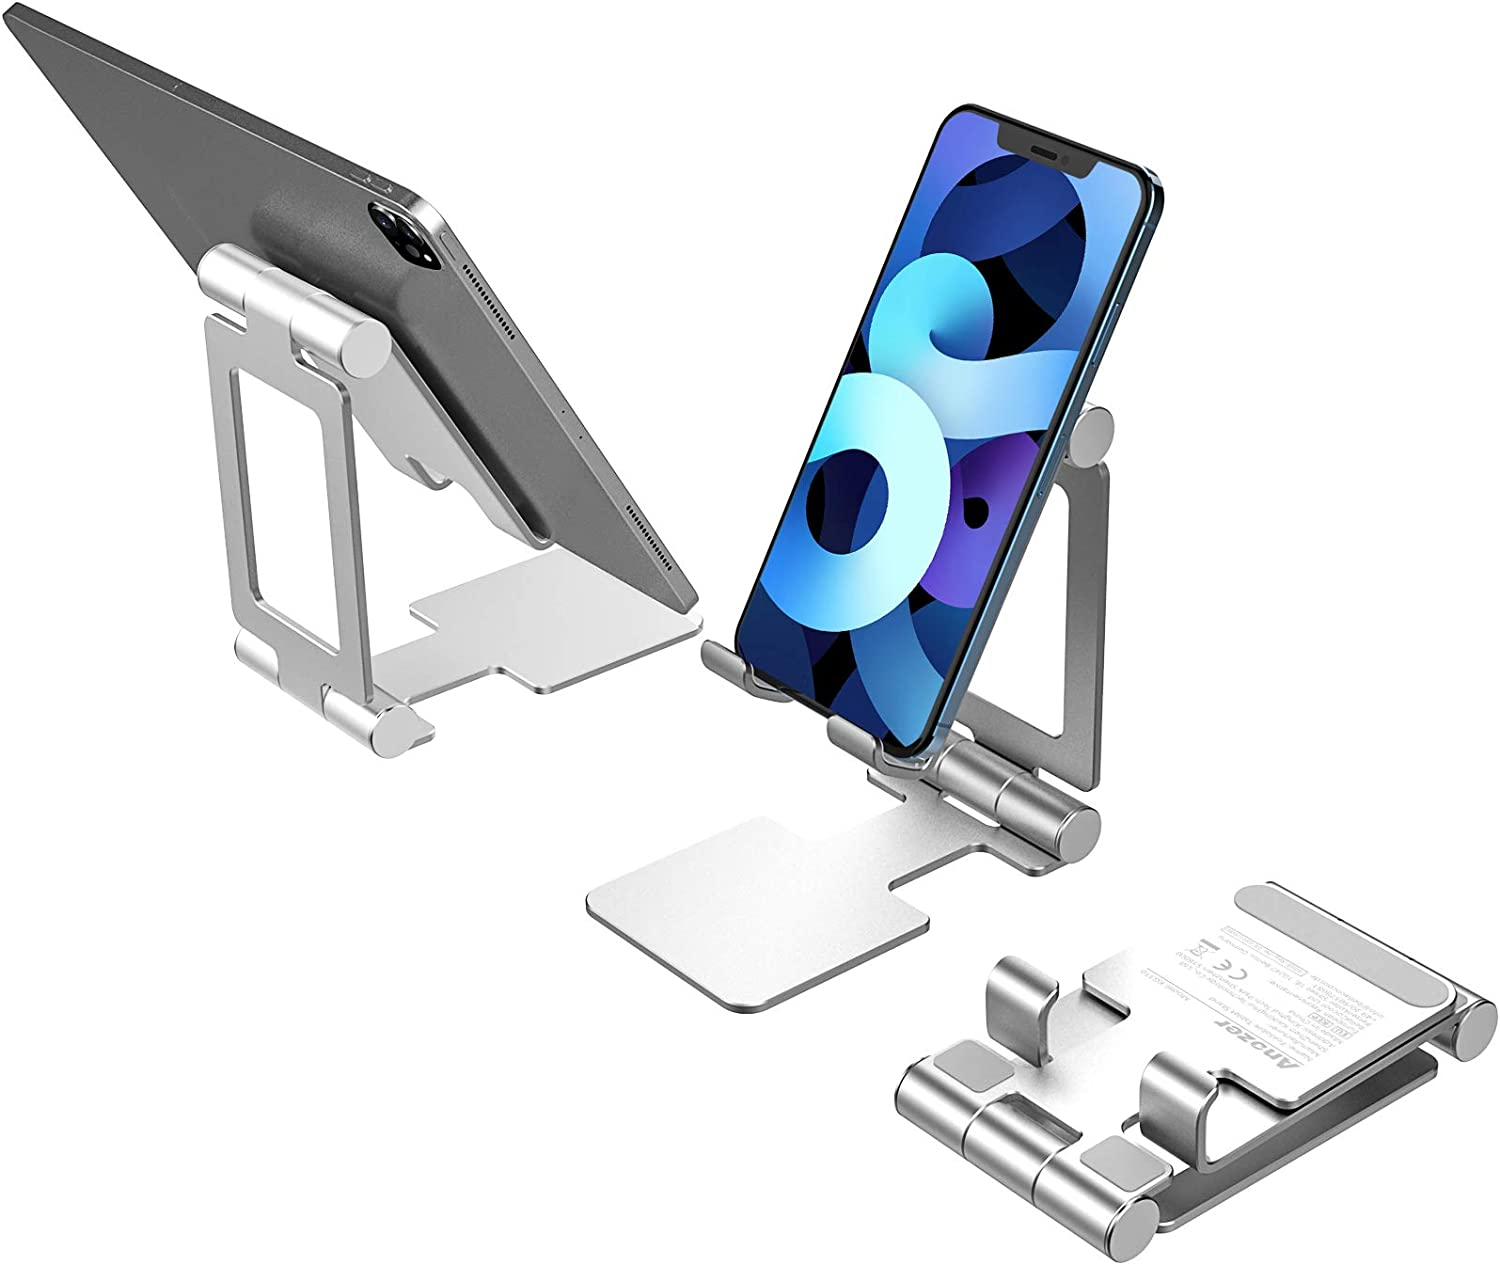 Anozer Cell Phone Stand, Fully Foldable, [2020 Updated] Angle Adjustable & Portable Aluminium Desktop Phone Tablet Stand Holder Cradle Dock Compatible with iPhone 12/12 Pro/iPad/Galaxy Tablet/Kindle